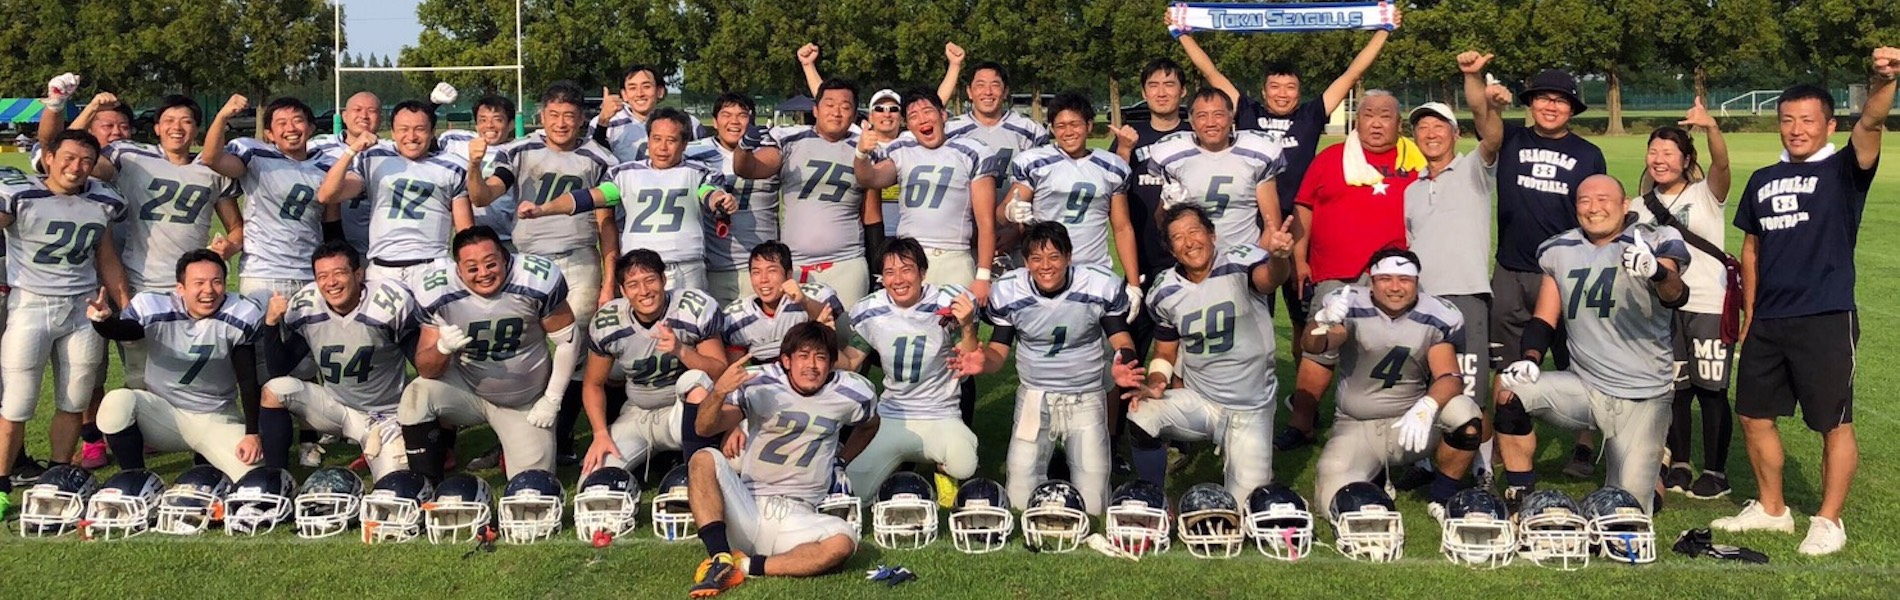 Group picture after game